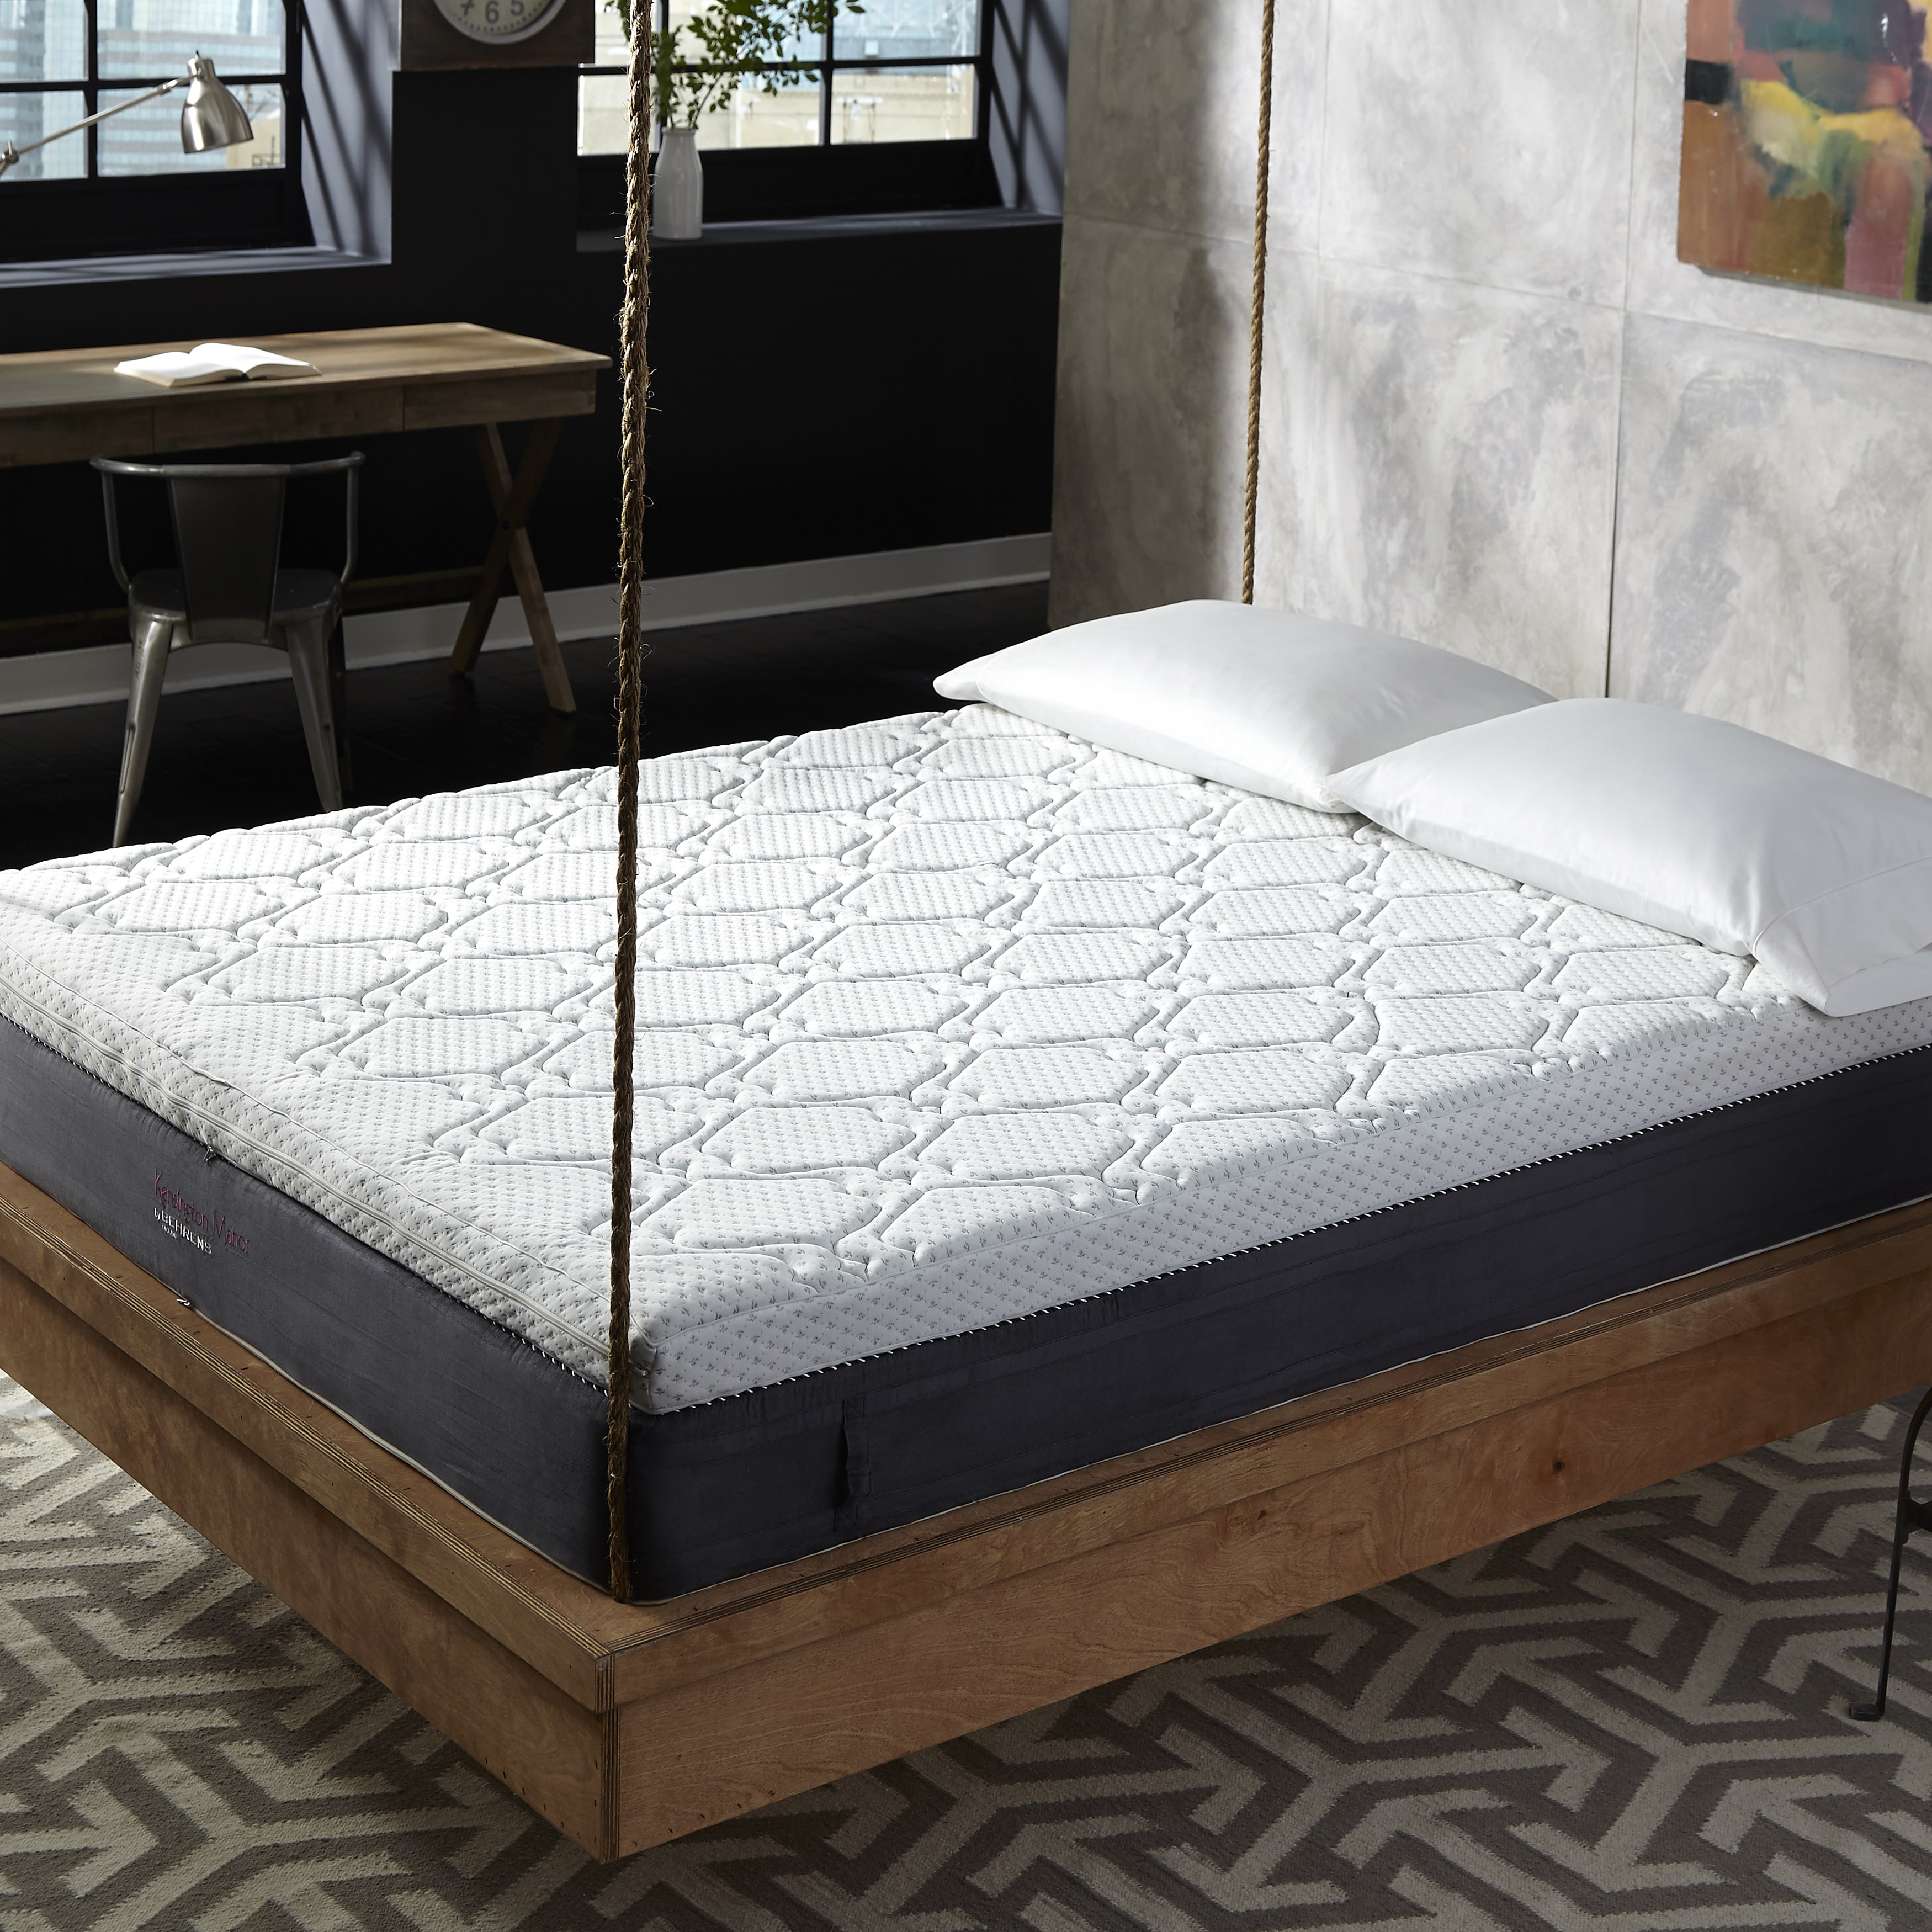 Rio Home fashions Behrens Kensington Manor 11-inch King-size Reversible-top Quilted Memory Foam Mattress